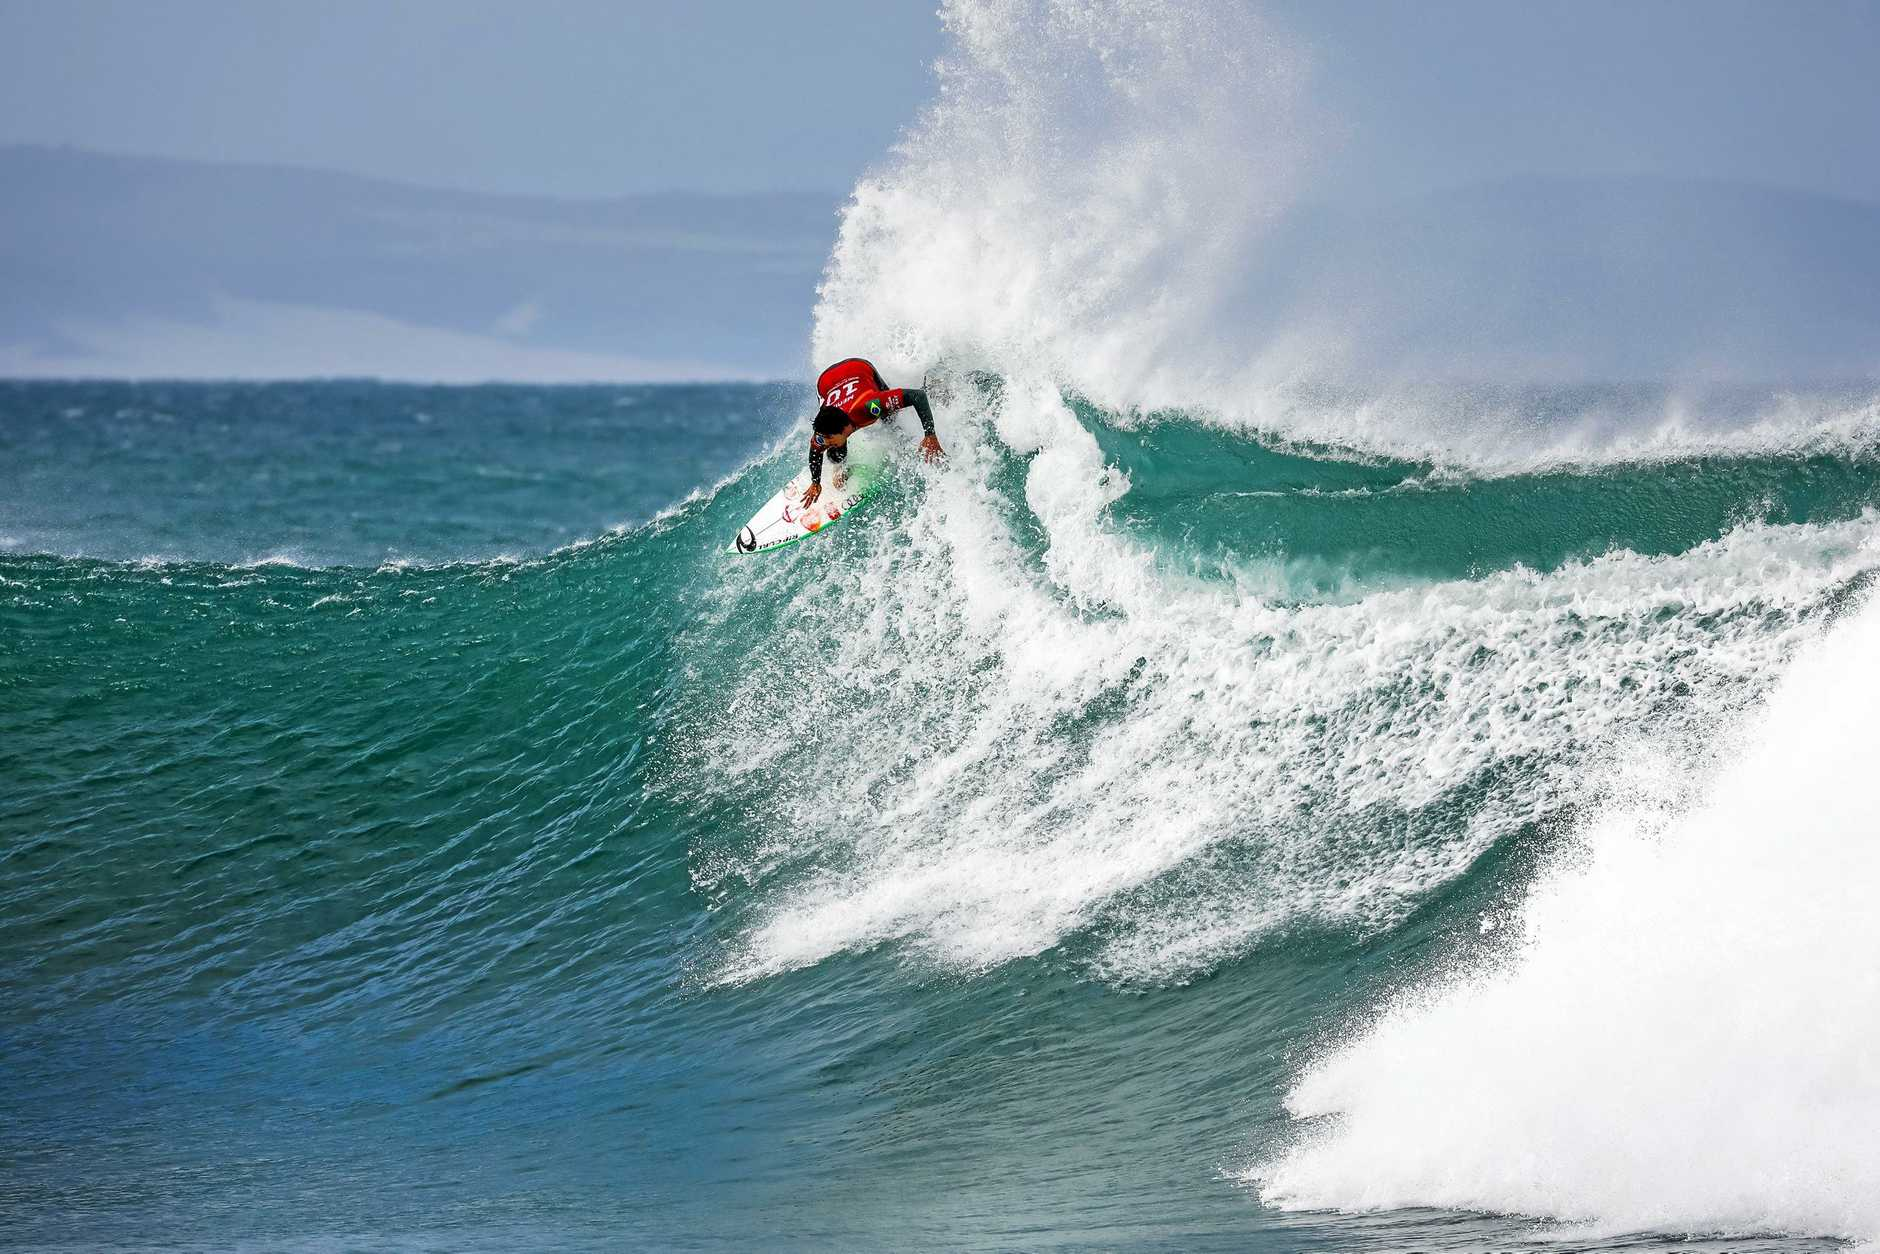 JEFFREYS BAY, SOUTH AFRICA - JULY 19: Two-time WSL Champion Gabriel Medina of Brazil wins the 2019 Corona Open J-Bay after winning the final at Supertubes on July 19, 2019 in Jeffreys Bay, South Africa. (Photo by Pierre Tostee/WSL via Getty Images)